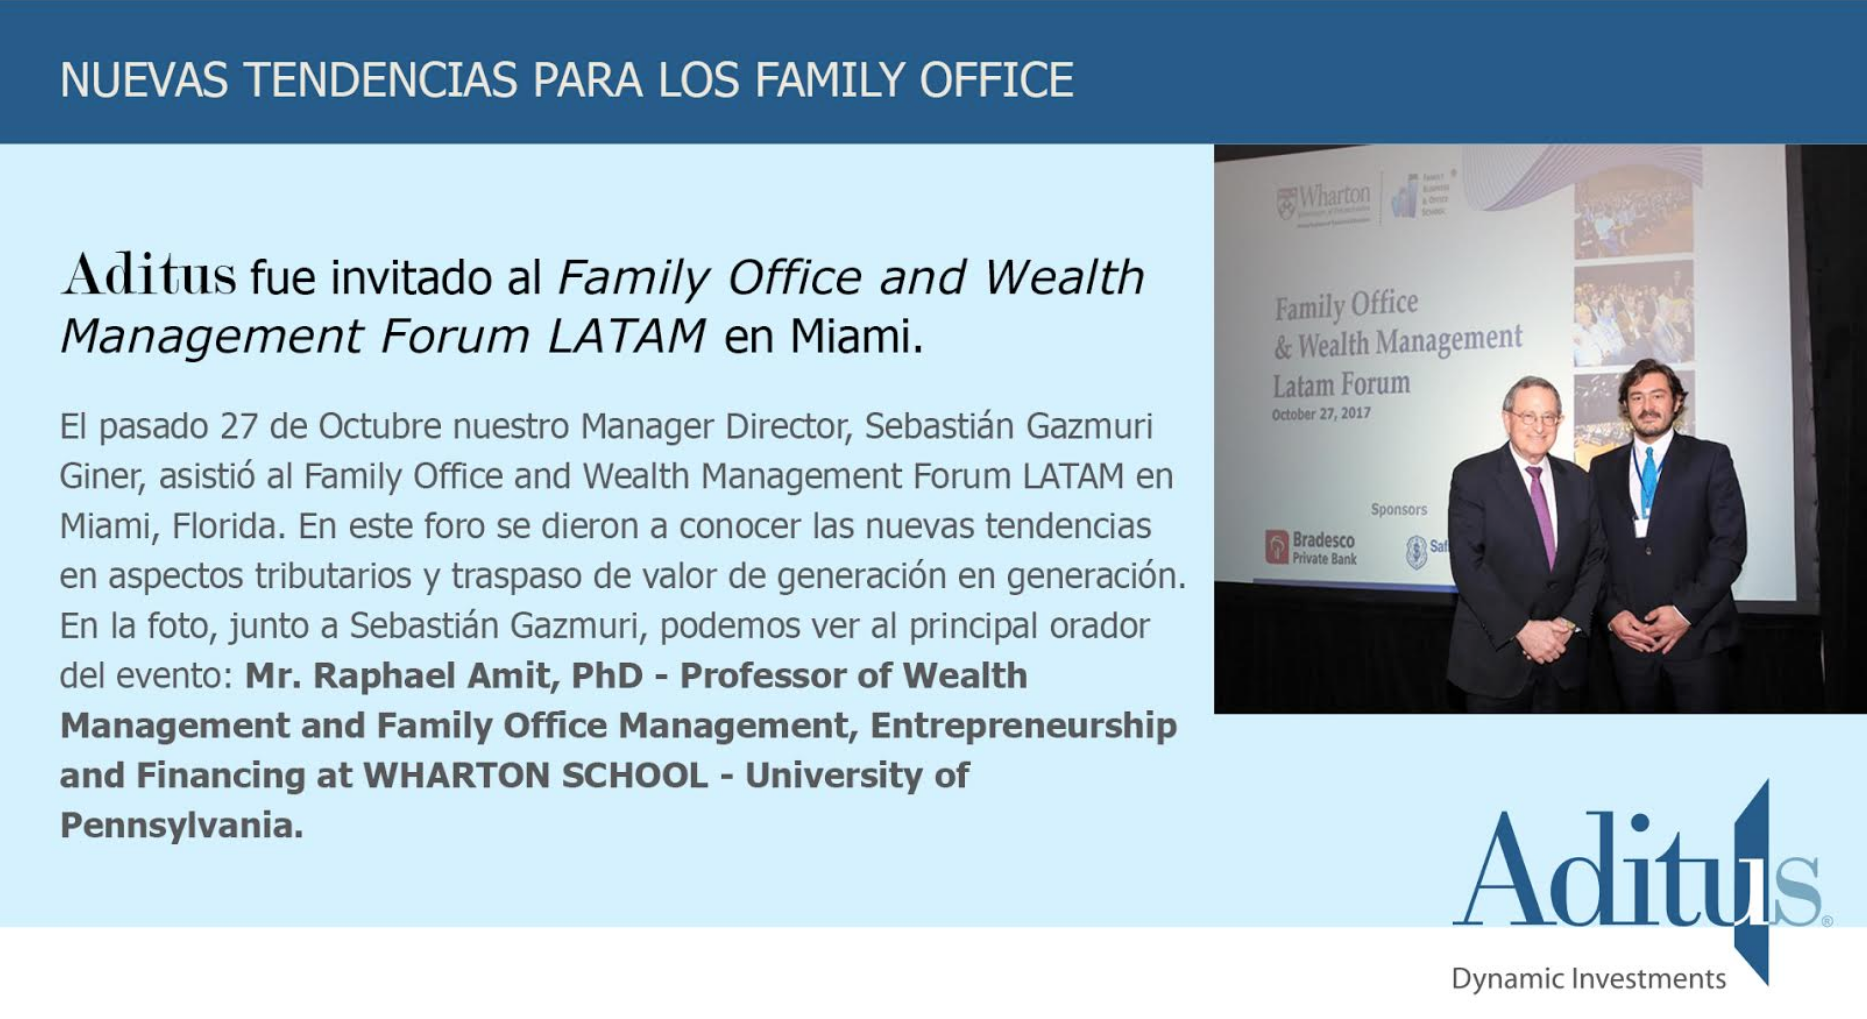 Aditus: Family office